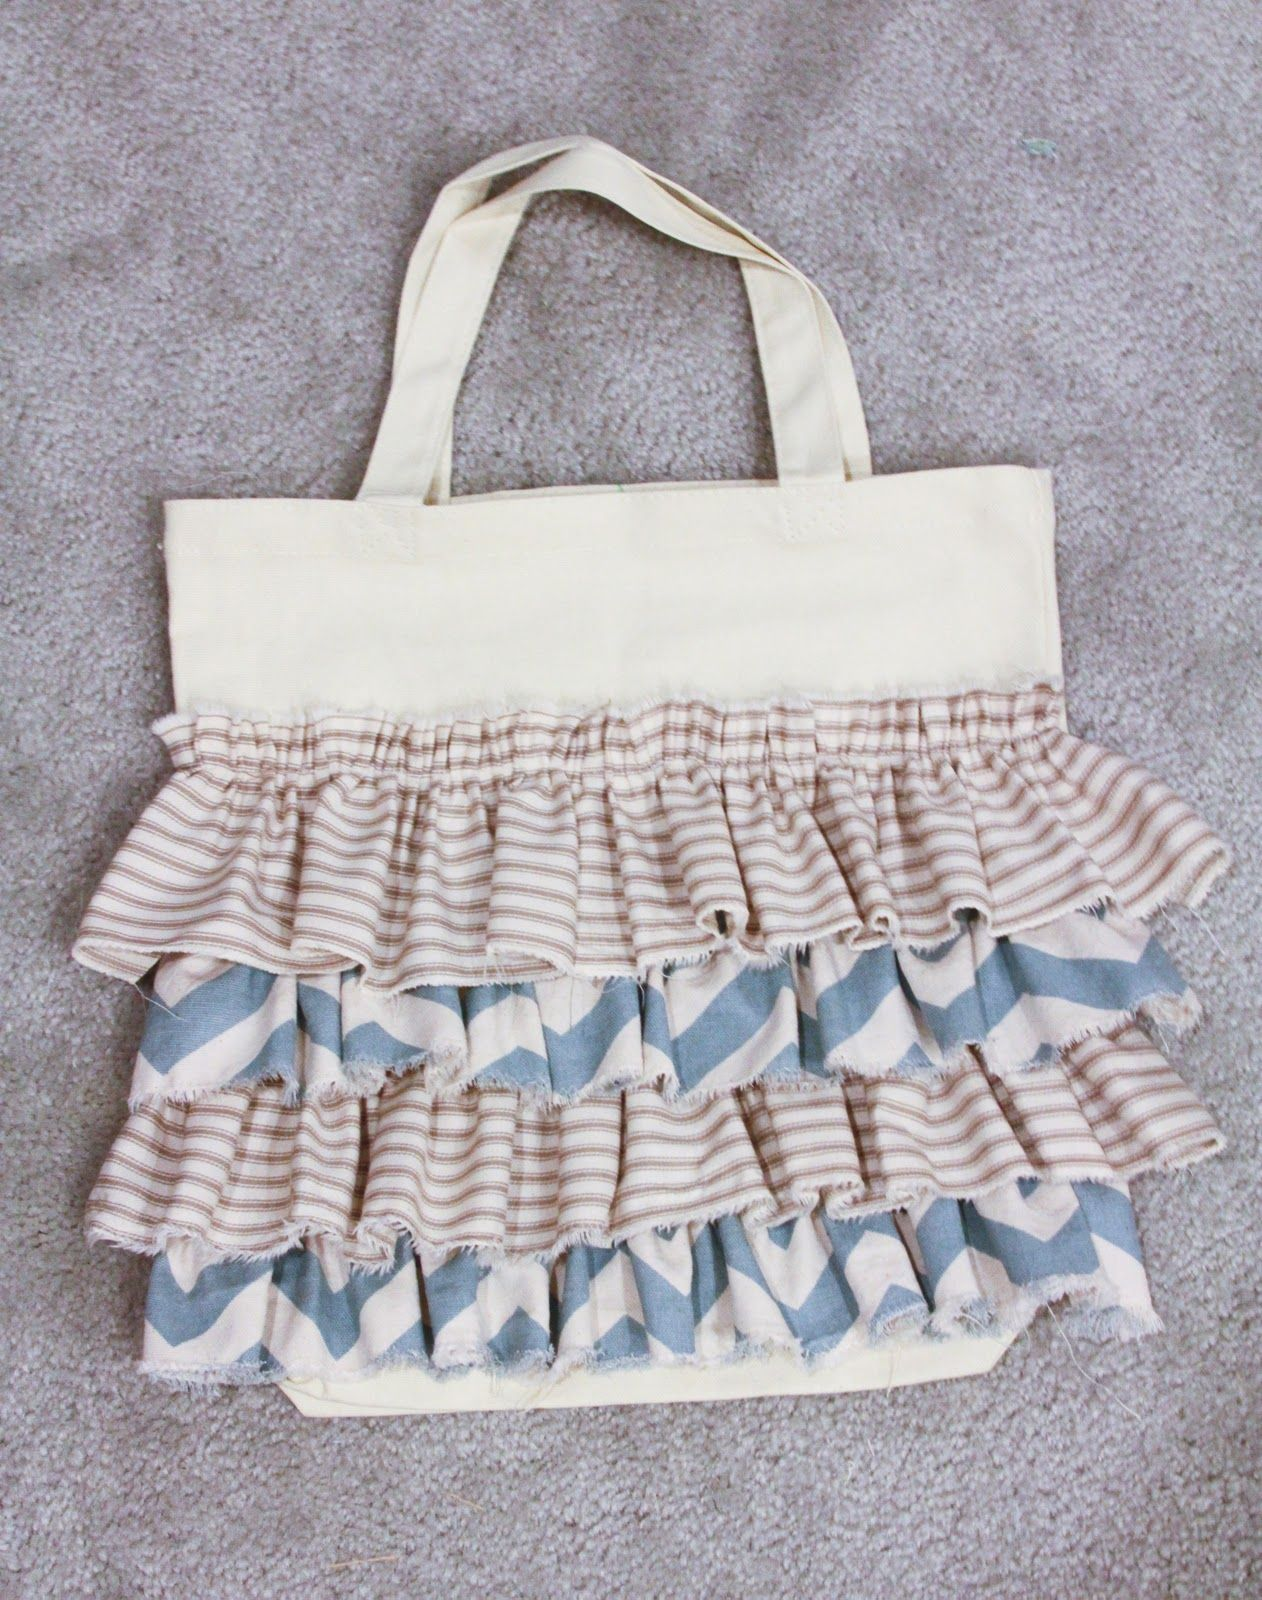 Ruffled Tote Tutorial | Ideas | Pinterest | Costura, Bolsos and Tejidos